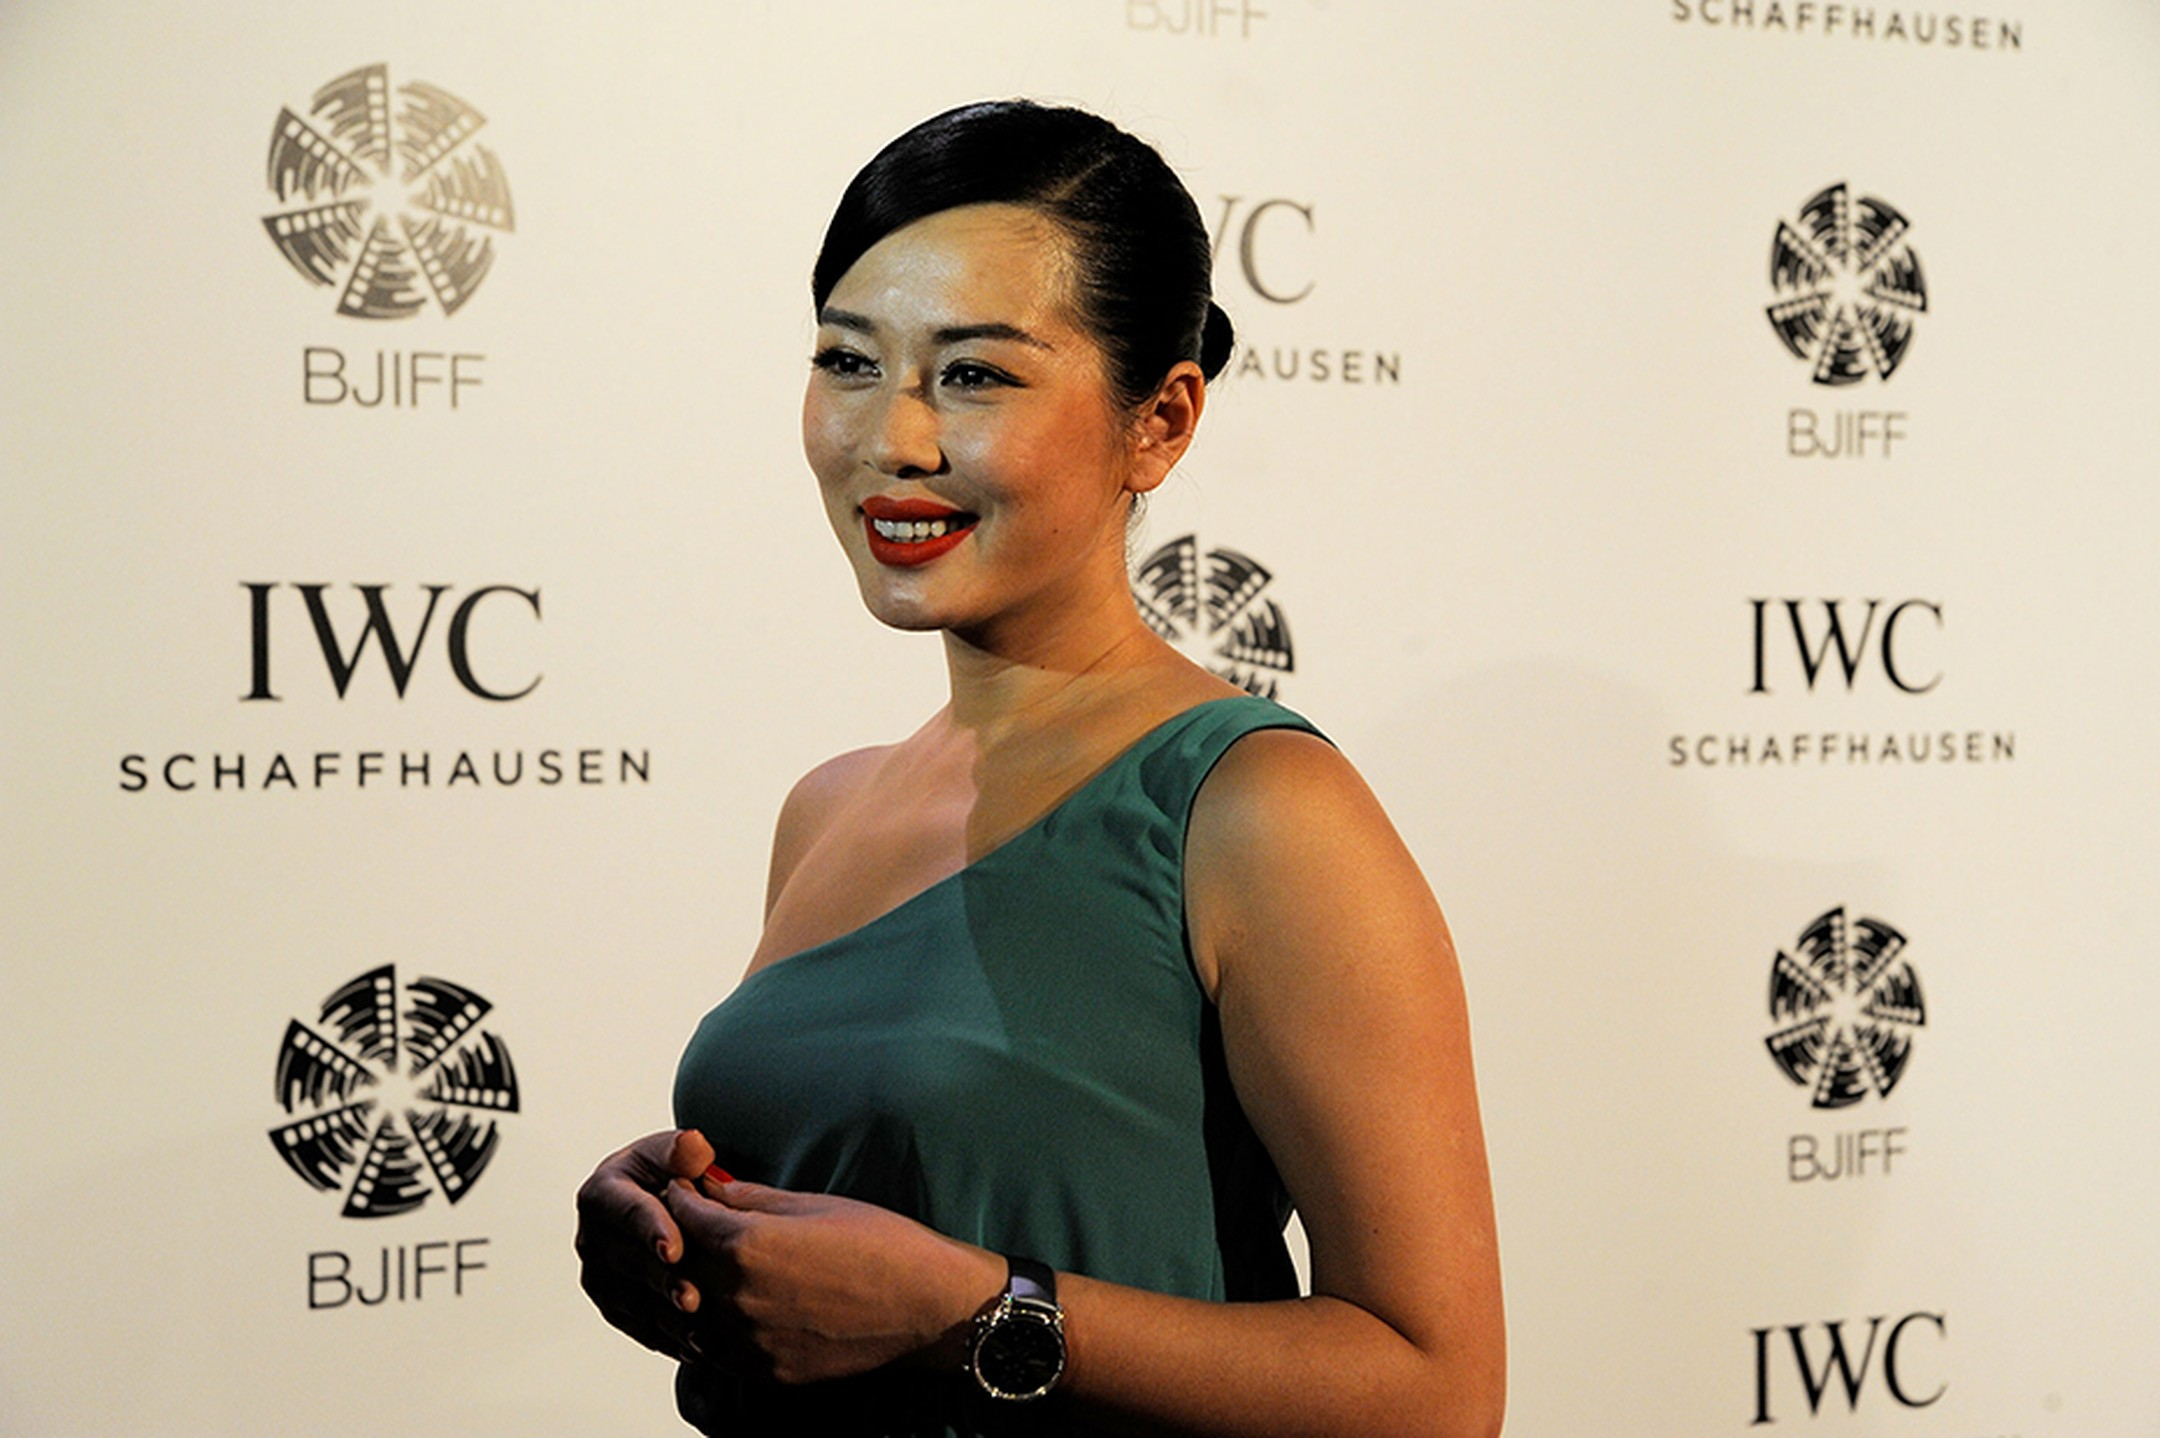 Actress Yu Nan attends the For the Love of Cinema event hosted IWC Schaffhausen at the Ming Dynasty City Wall on April 22, 2013 in Beijing, China. Image by: IWC/David M. Benett.